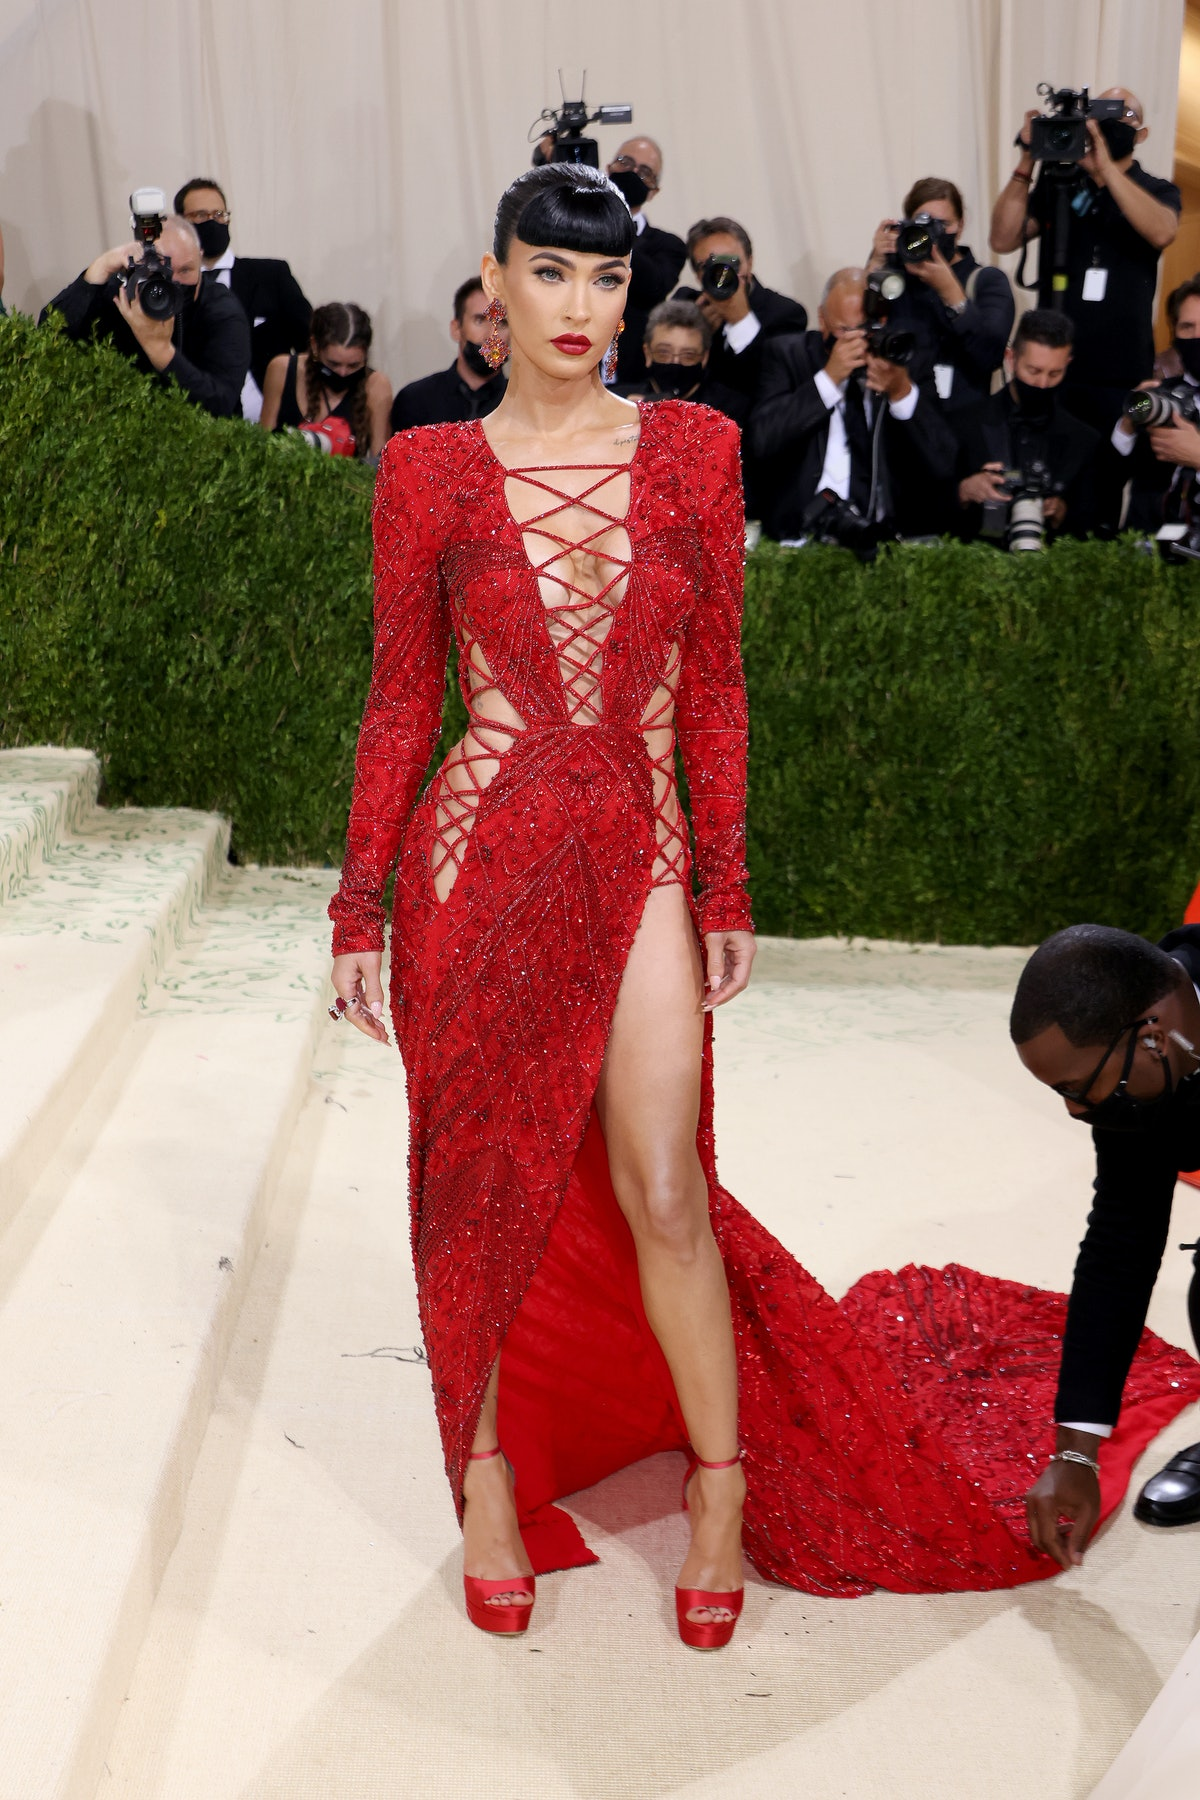 Megan Fox's 2021 Met Gala gown was red and featured lace embroidery.